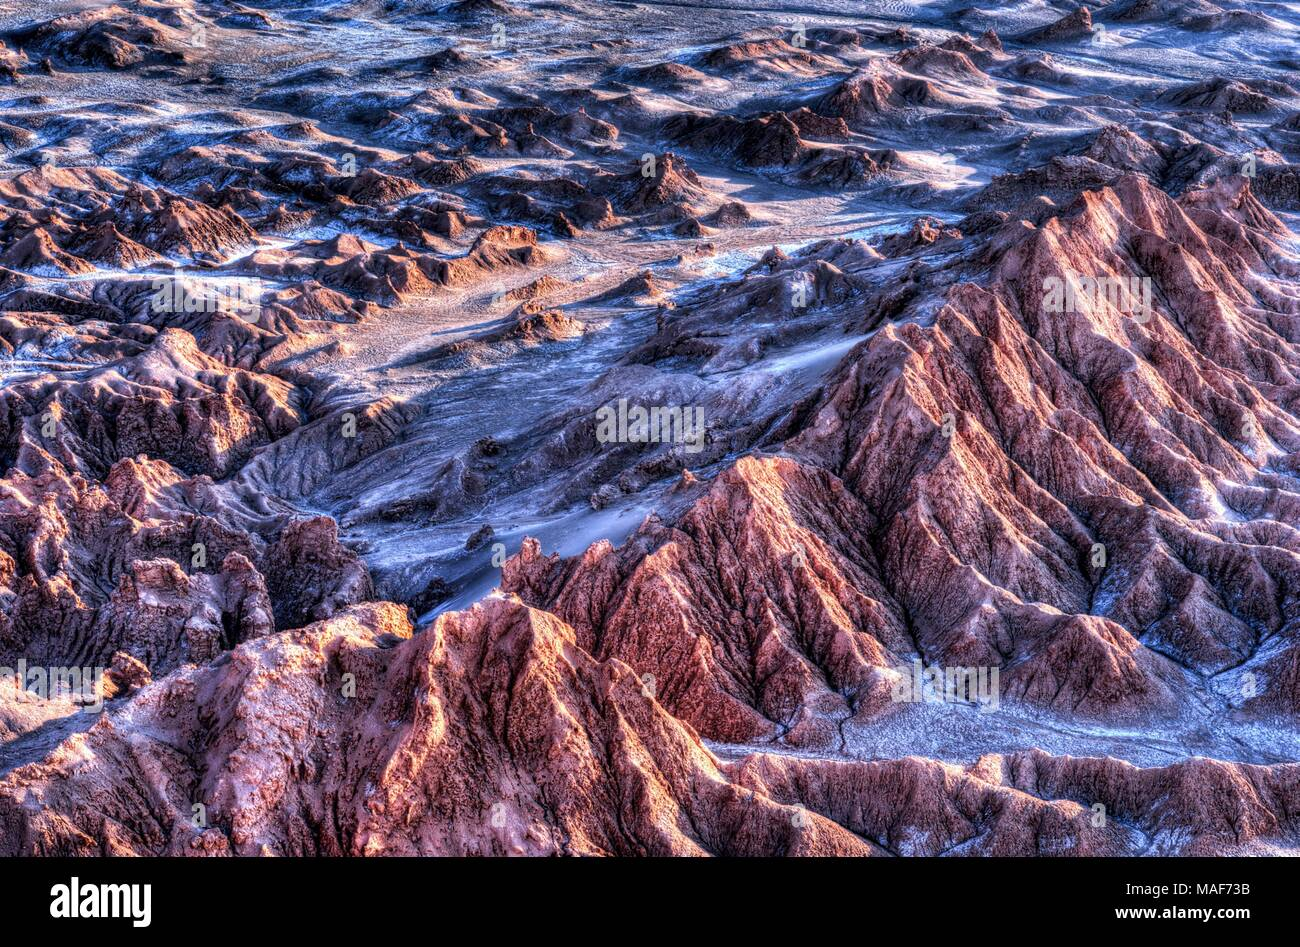 dry and desert landscape in the north of chile, Atacama - Stock Image